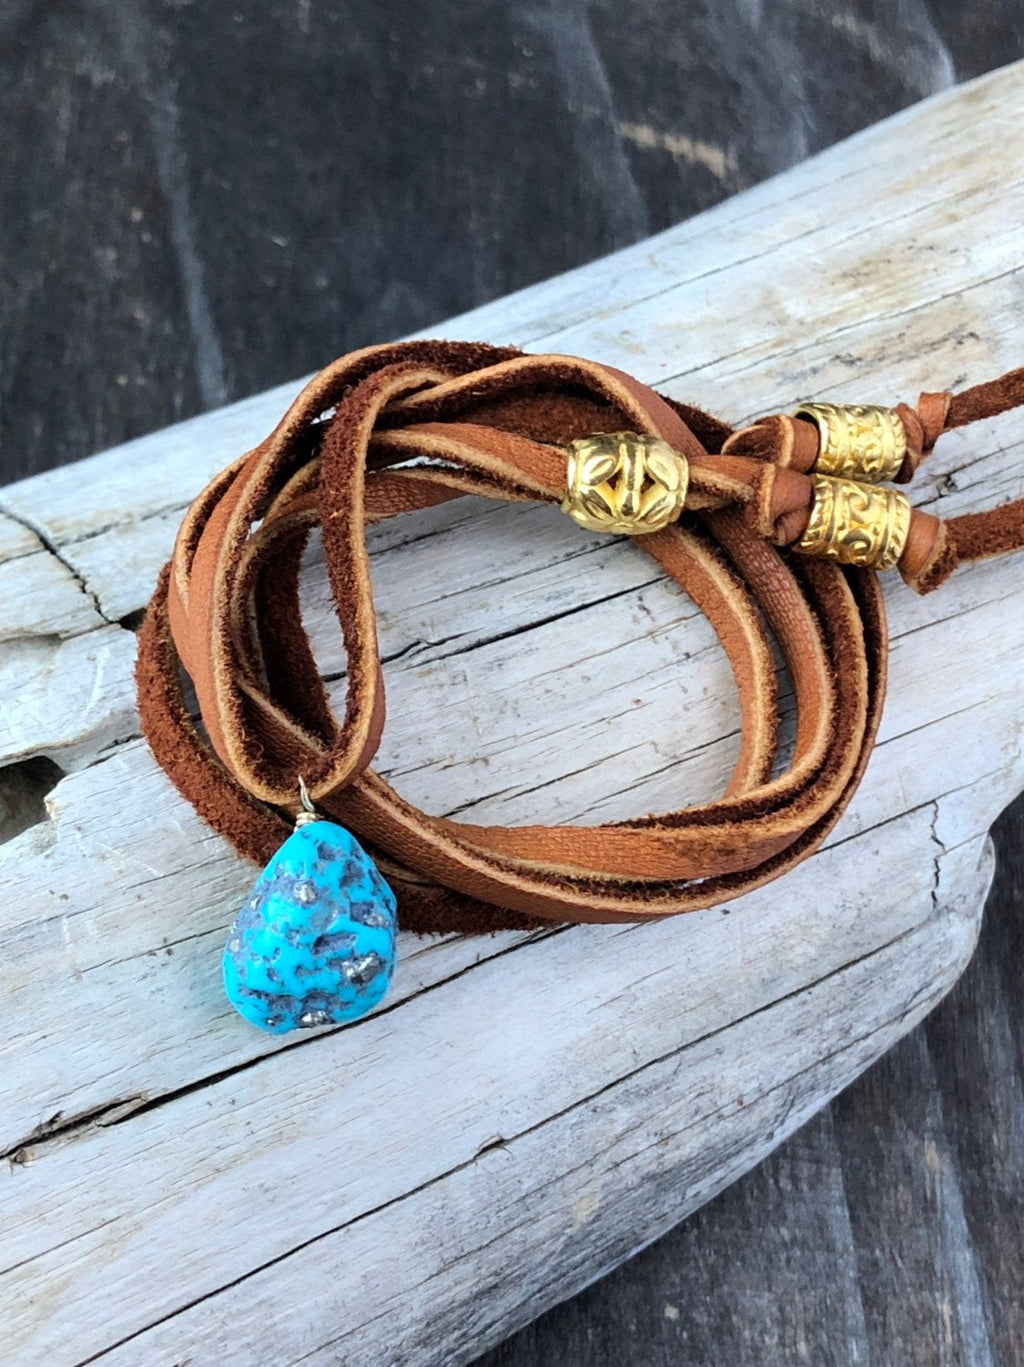 Turquoise Leather Wrap Bracelet Necklace / Convertible Versatile Jewelry / Boho Leather Necklace / Genuine Turquoise / Boho Wrap Bracelet